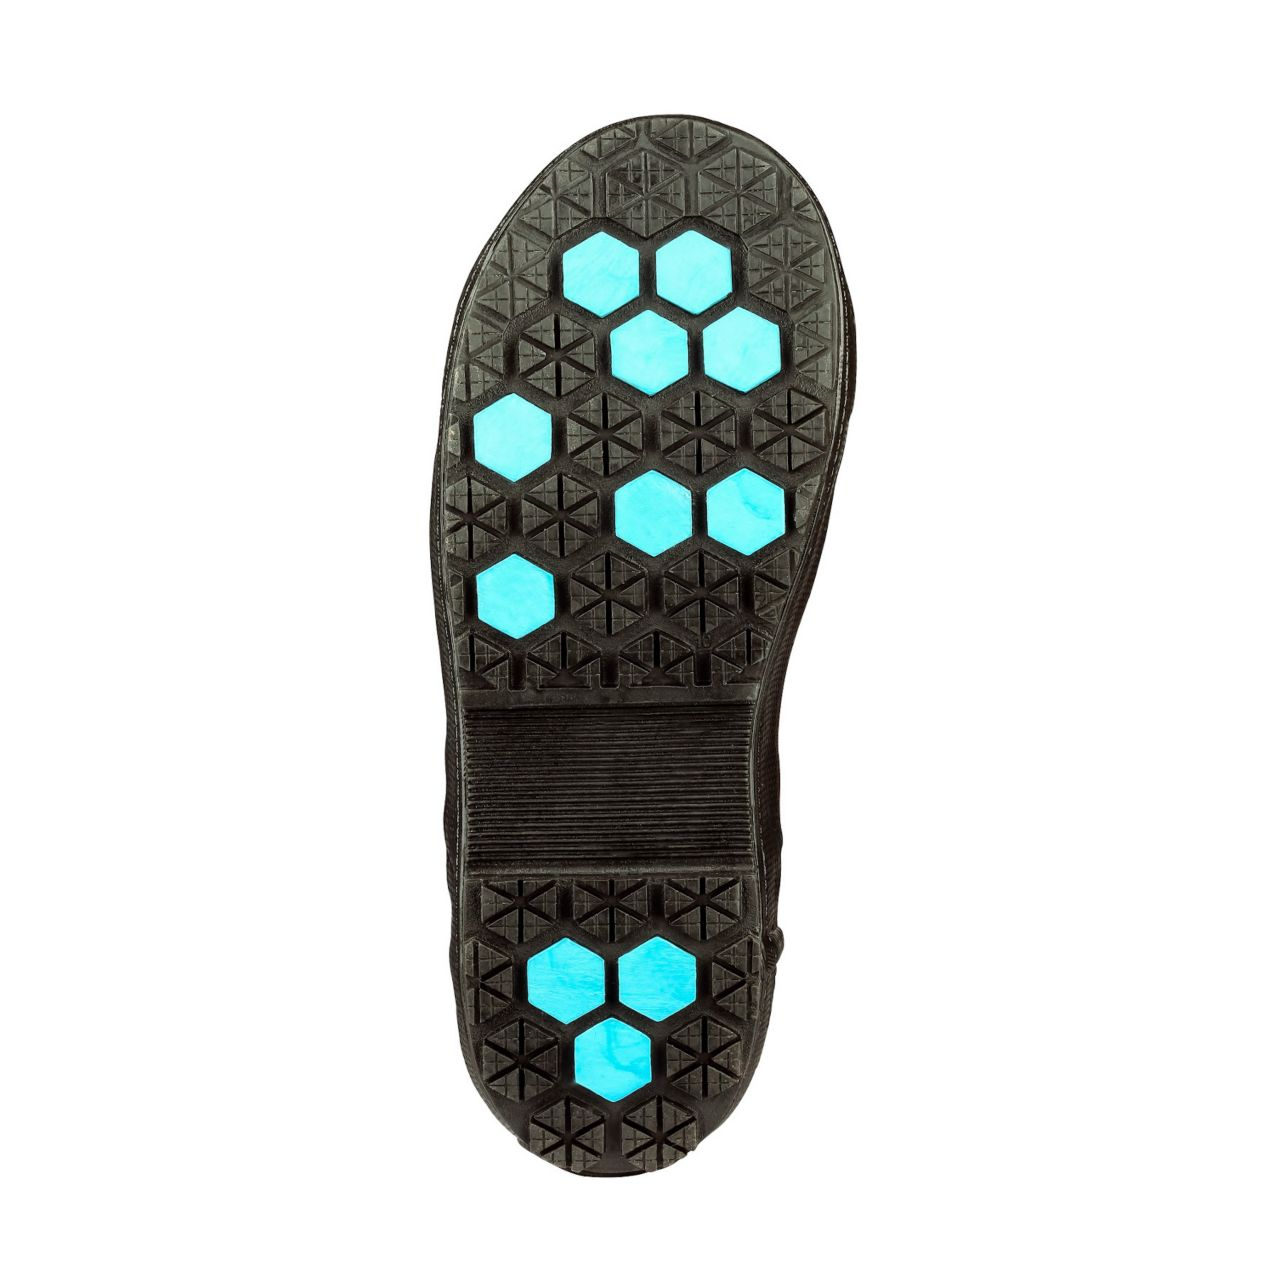 sps-his-electrigrip-thermal-boots-outsole